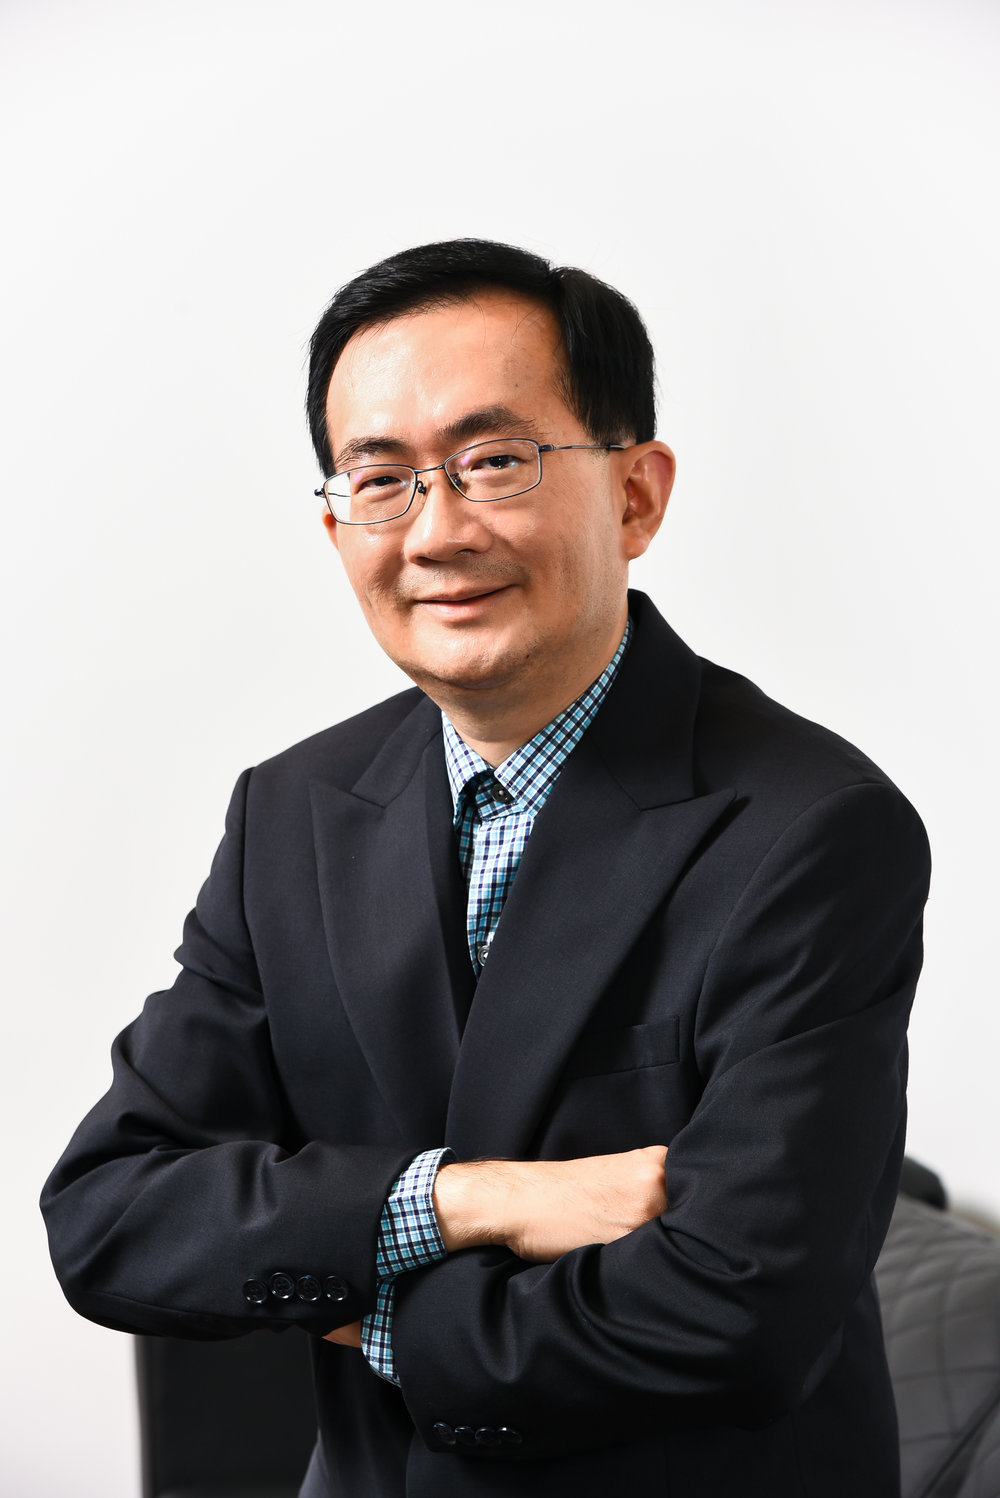 Dr Steven Ang - Dr Steven Aesthetic and Laser Clinic, Orchard Road